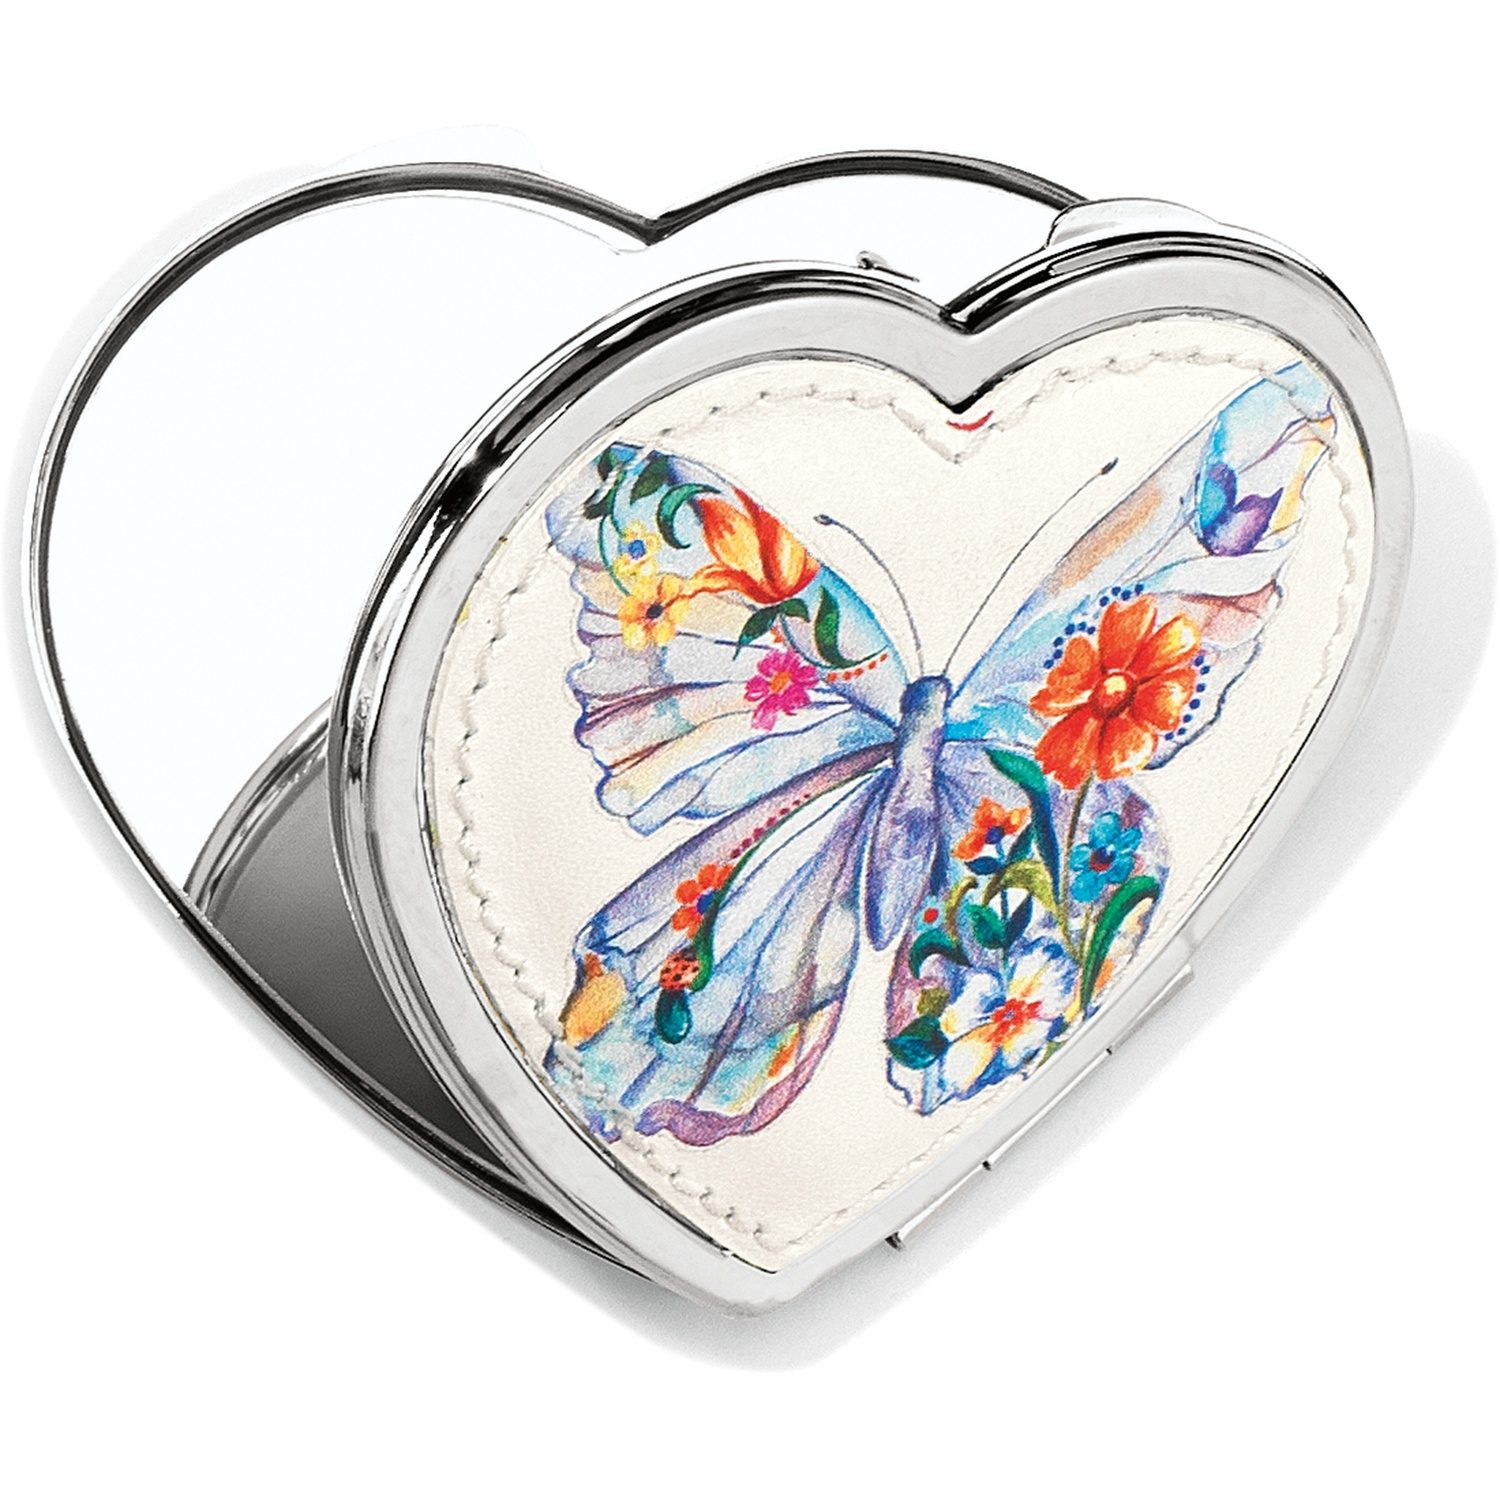 belle jardin belle jardin heart compact mirror small collectibles. Black Bedroom Furniture Sets. Home Design Ideas